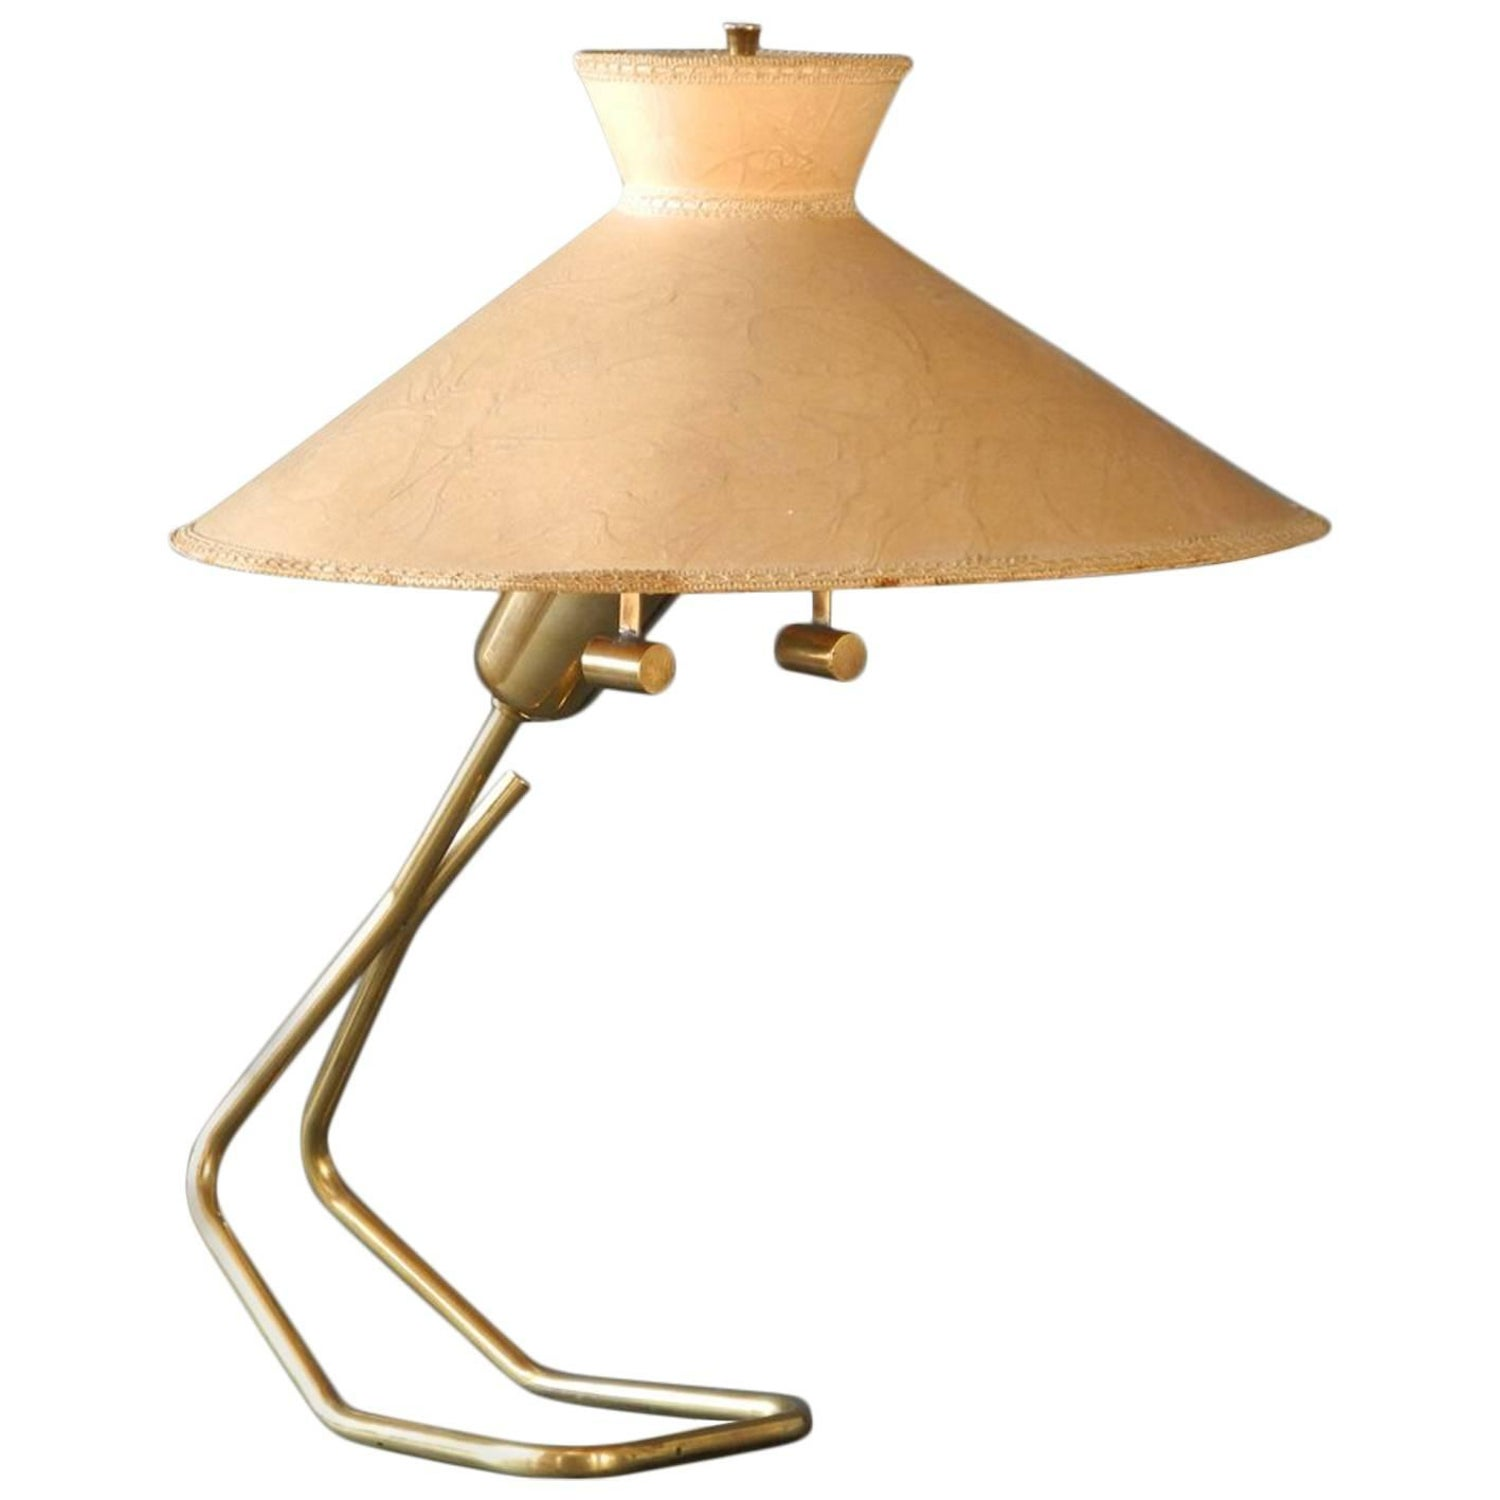 1950s Large Brass Table Lamp With Vellum Shade Vereinigte